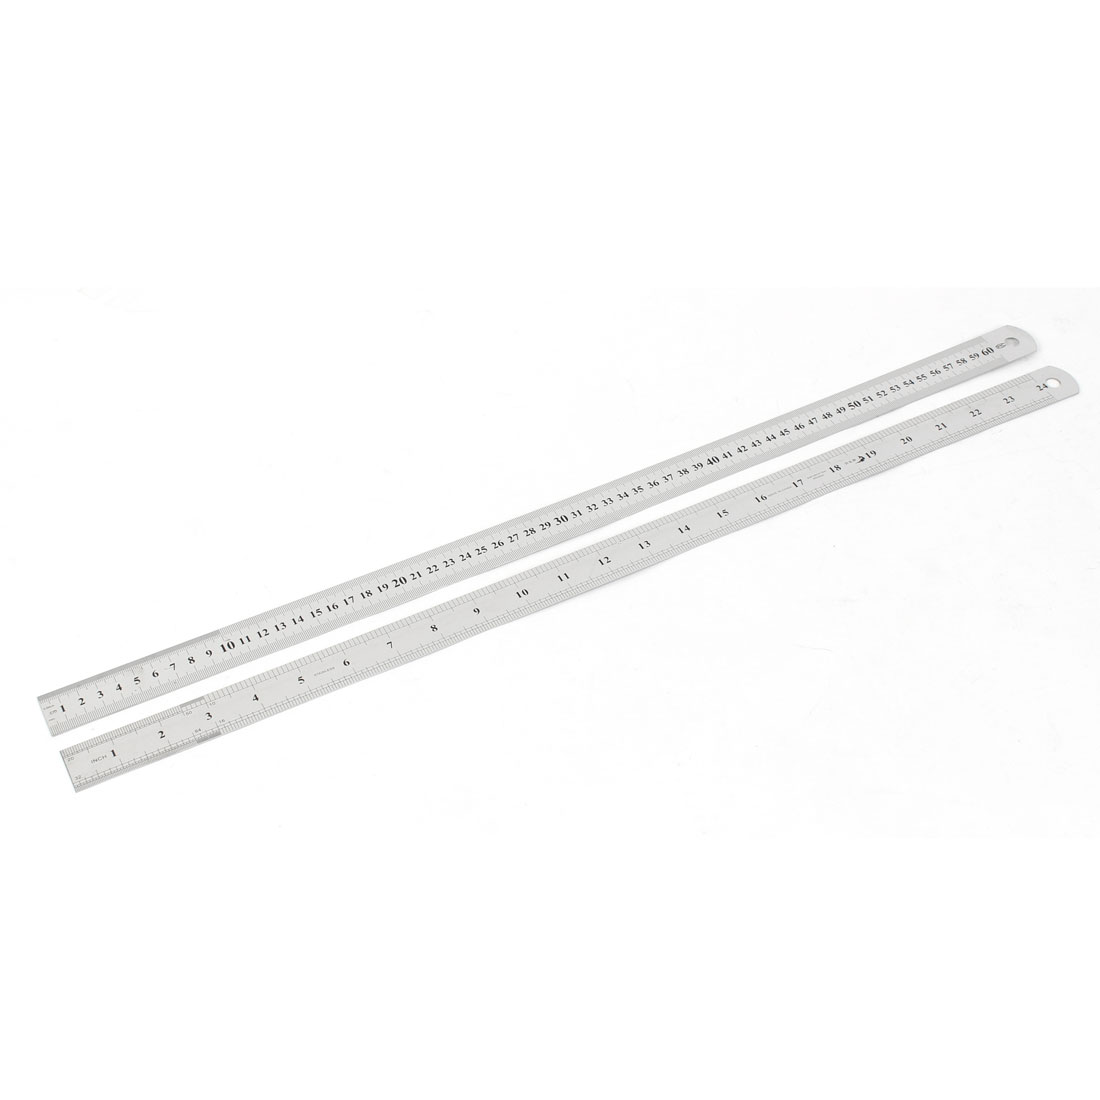 2pcs Dual Side Stainless Steel Straight Edge Ruler Measuring Tool 60cm 24 Inch